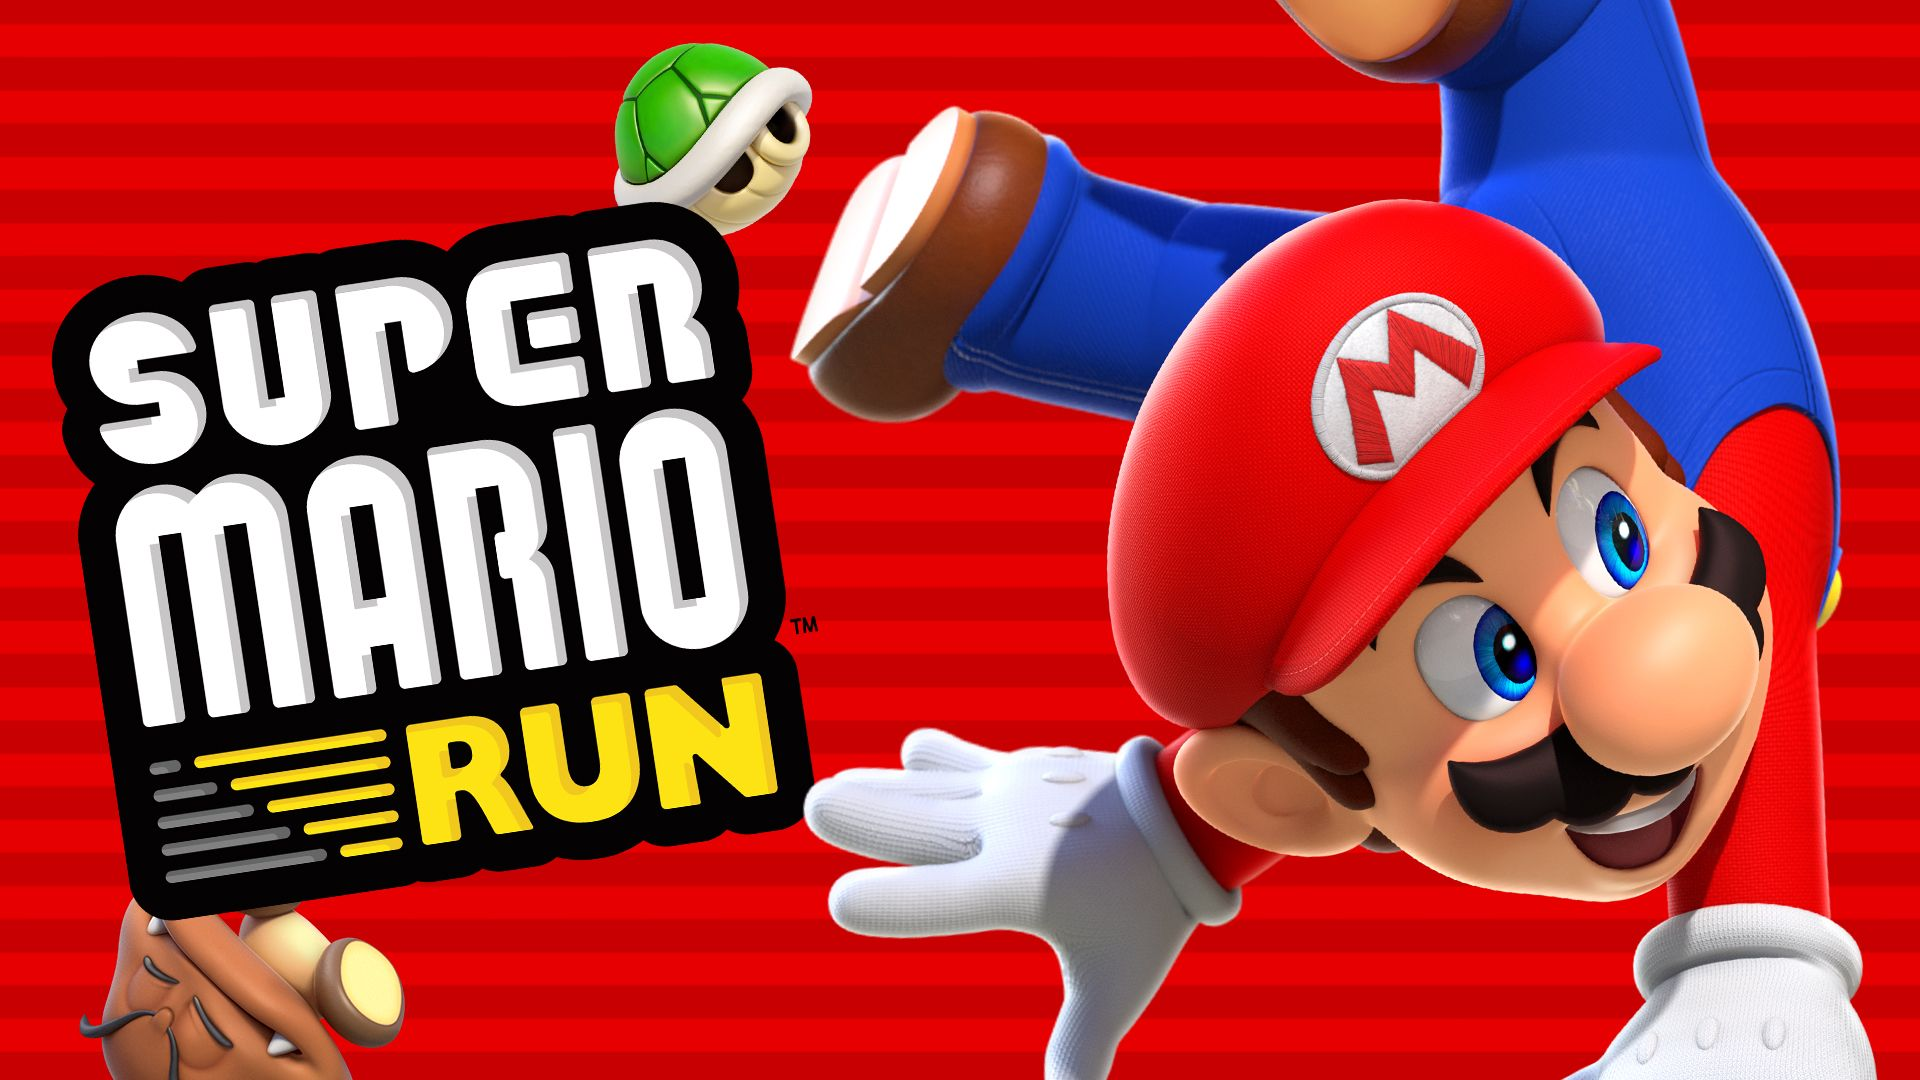 Super Mario Run Reviews Poorly, Nintendo's Share Prices